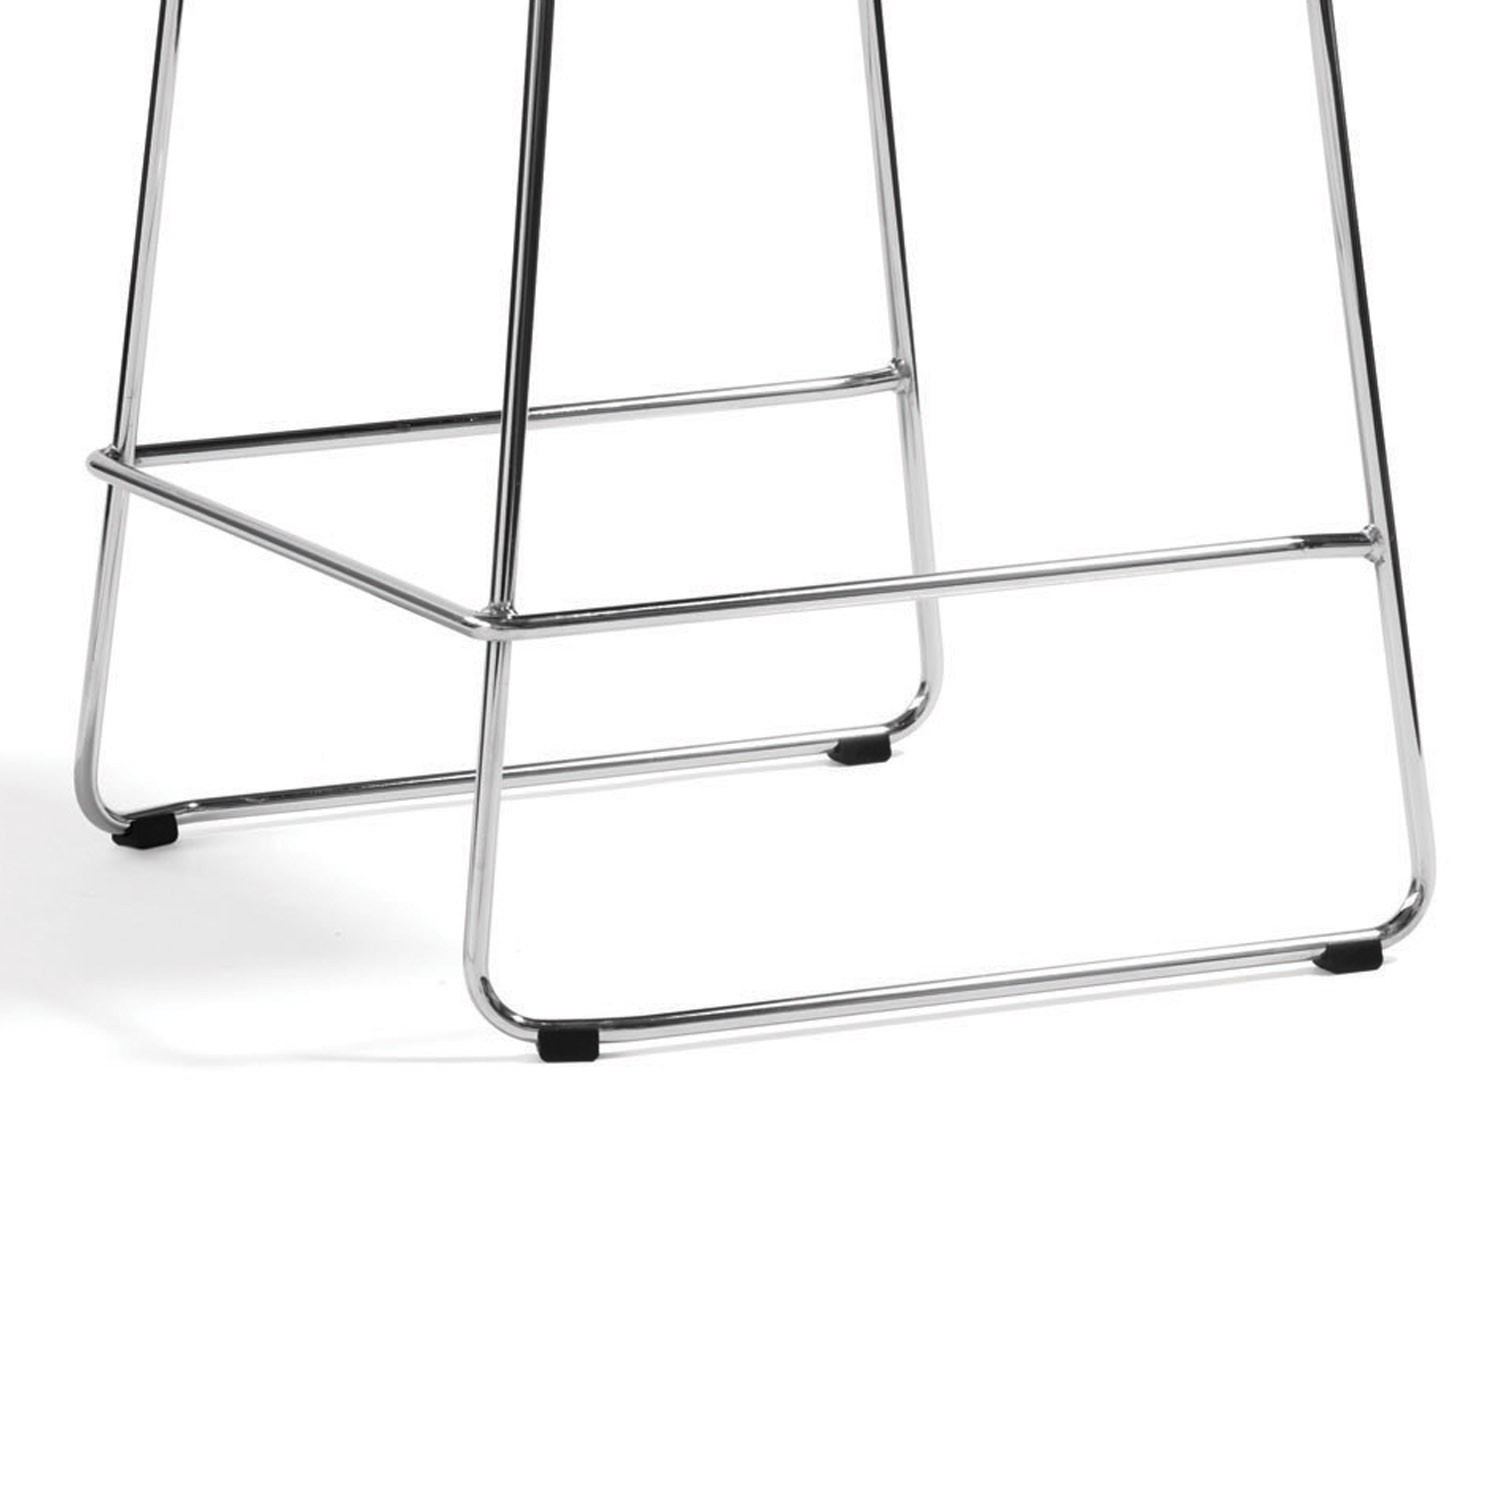 Dundra Sled Base Stools by Bla Station